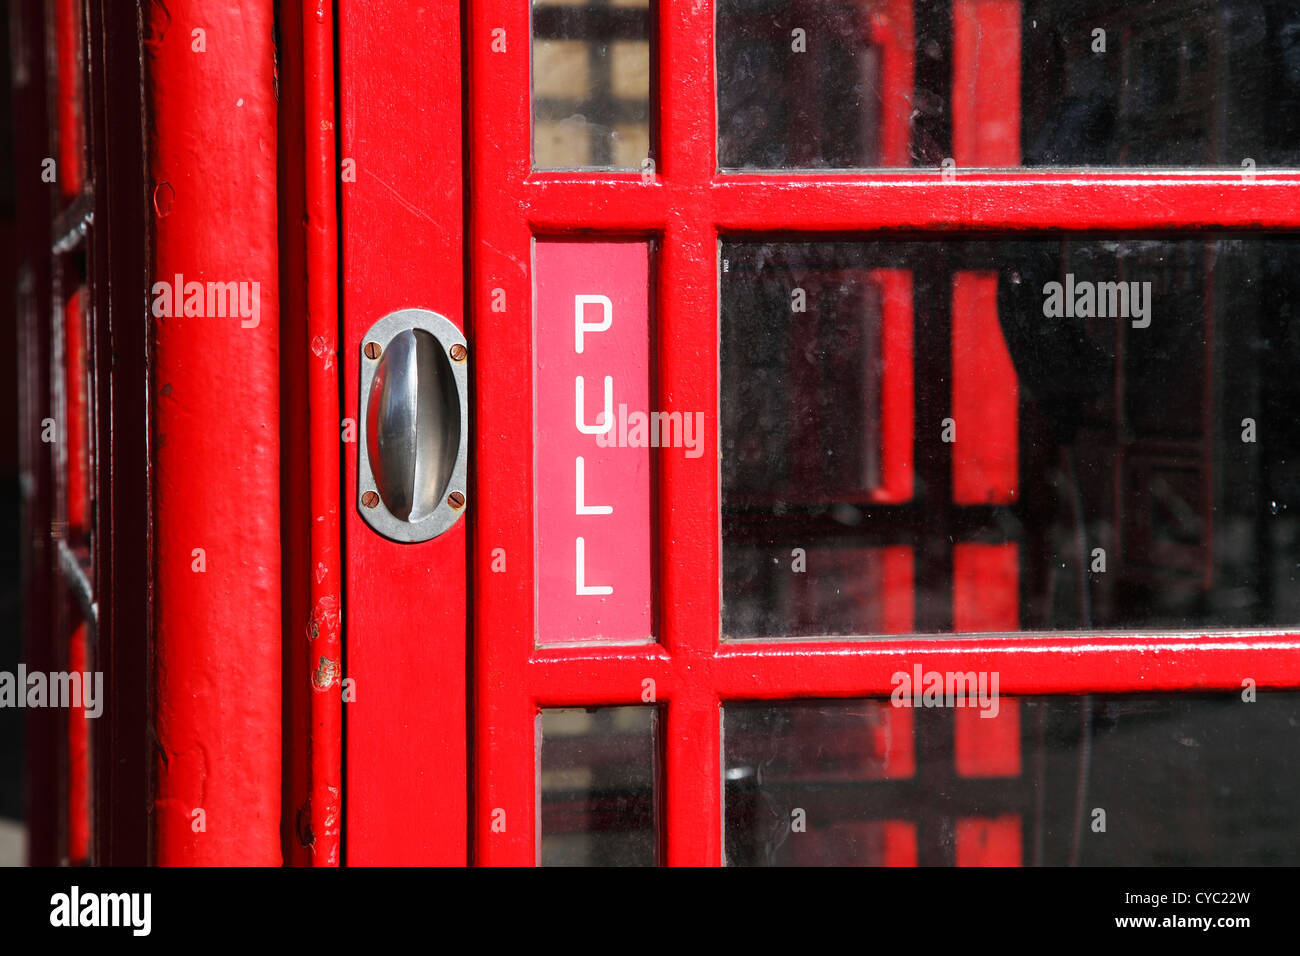 A red BT telephone box in London, England, U.K. - Stock Image